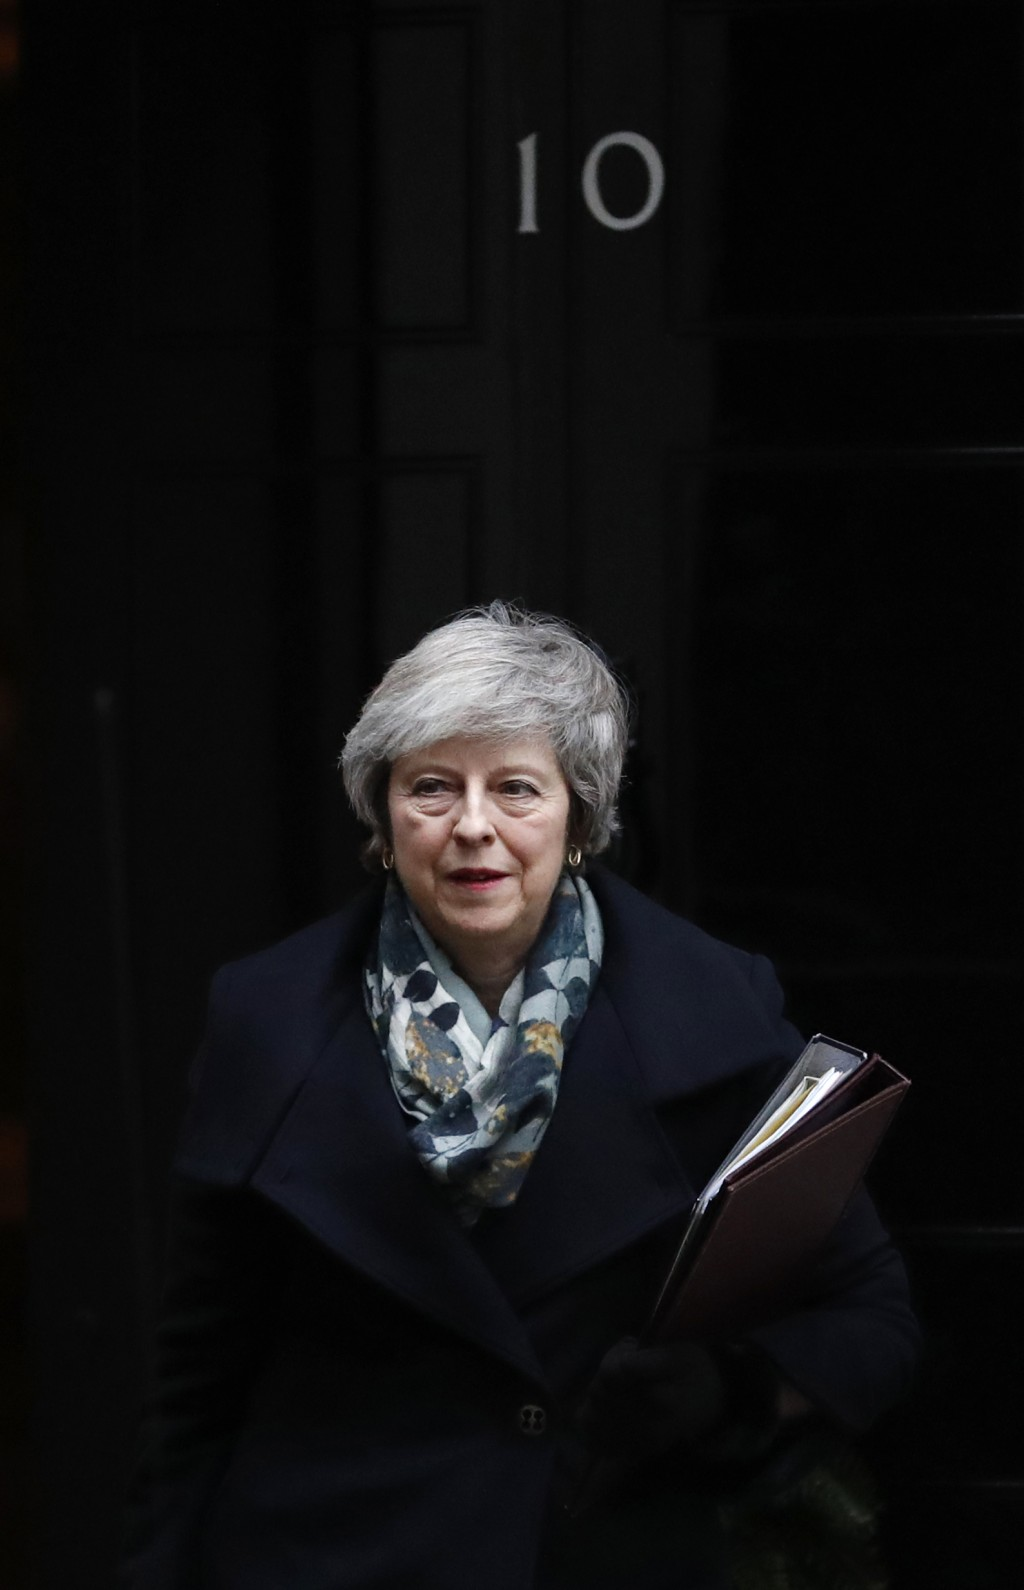 Britain's Prime Minister Theresa May leaves 10 Downing Street, in London Monday, Dec. 17, 2018, for the House of Commons to make a statement on the EU...